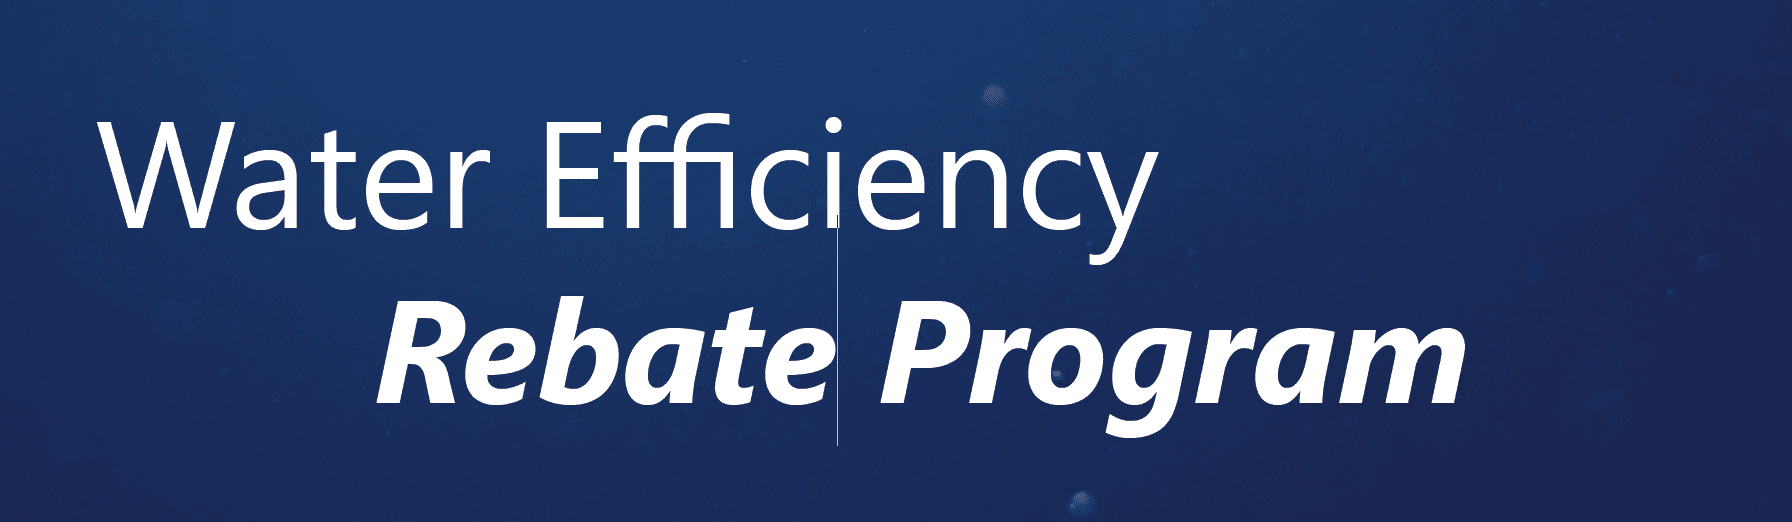 Water Efficiency Rebate Program Header